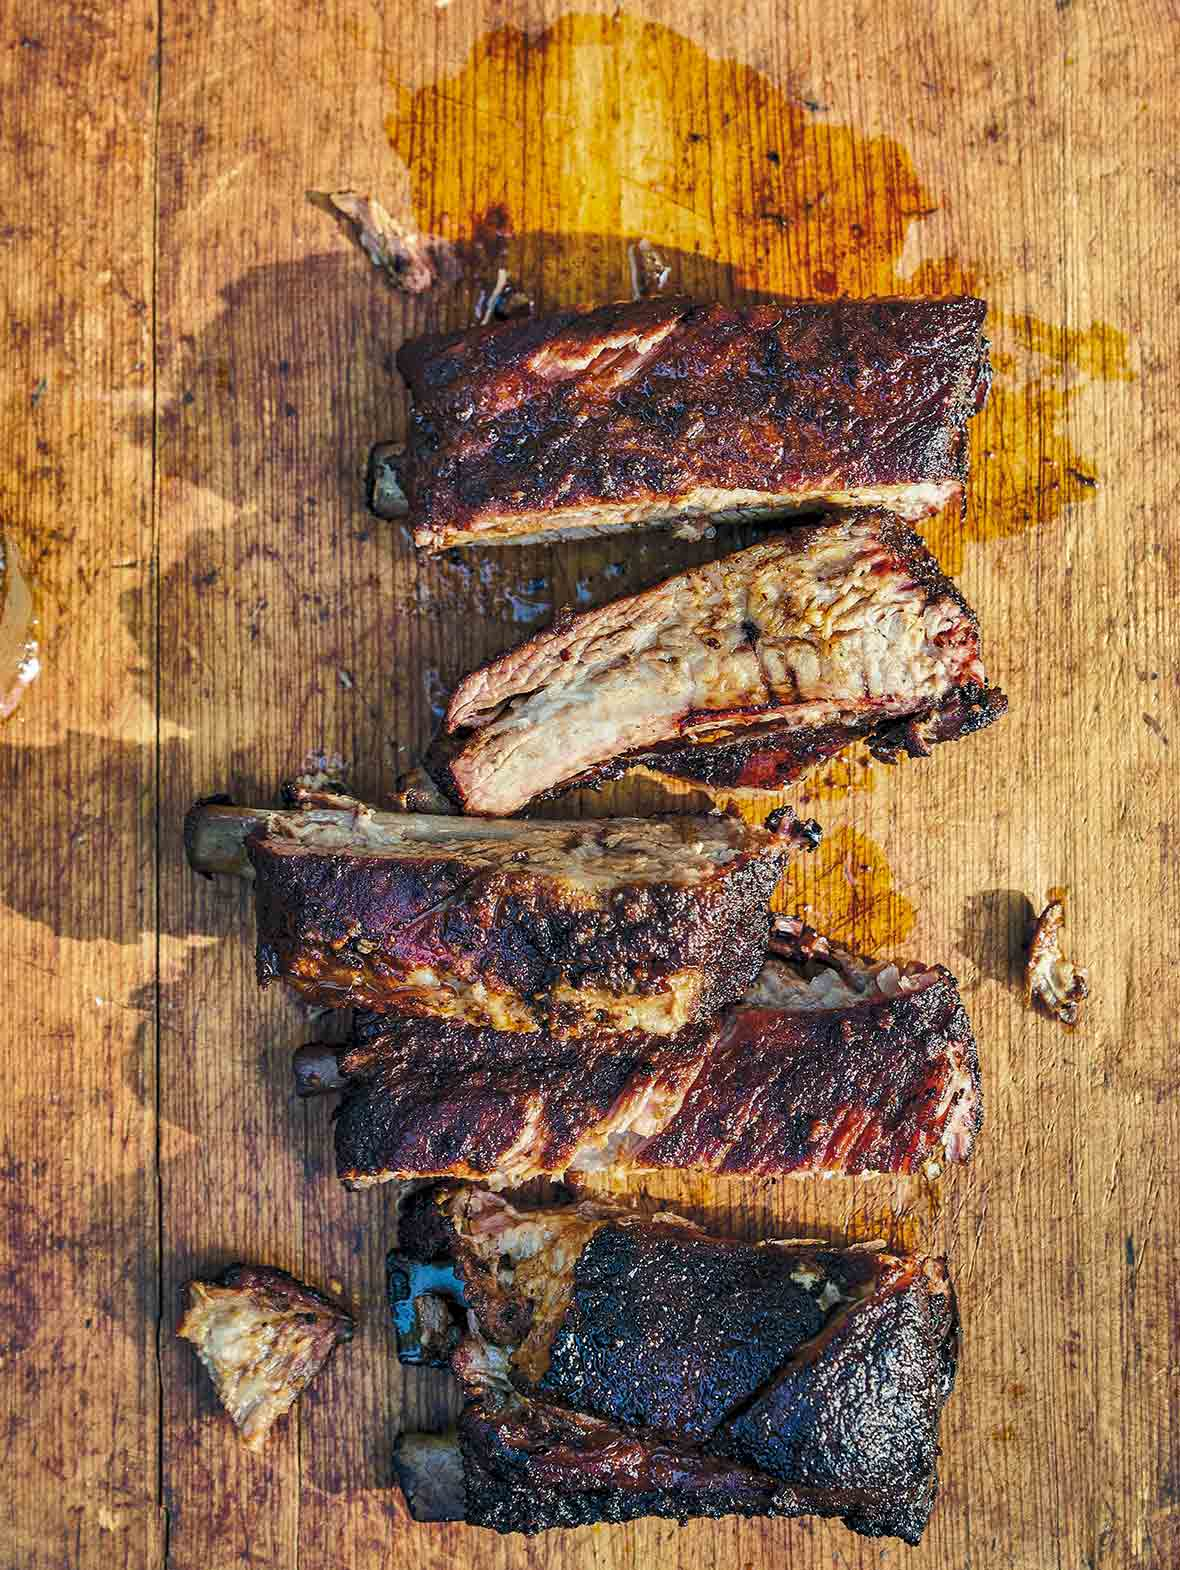 A wooden board with five cut Memphis-style ribs